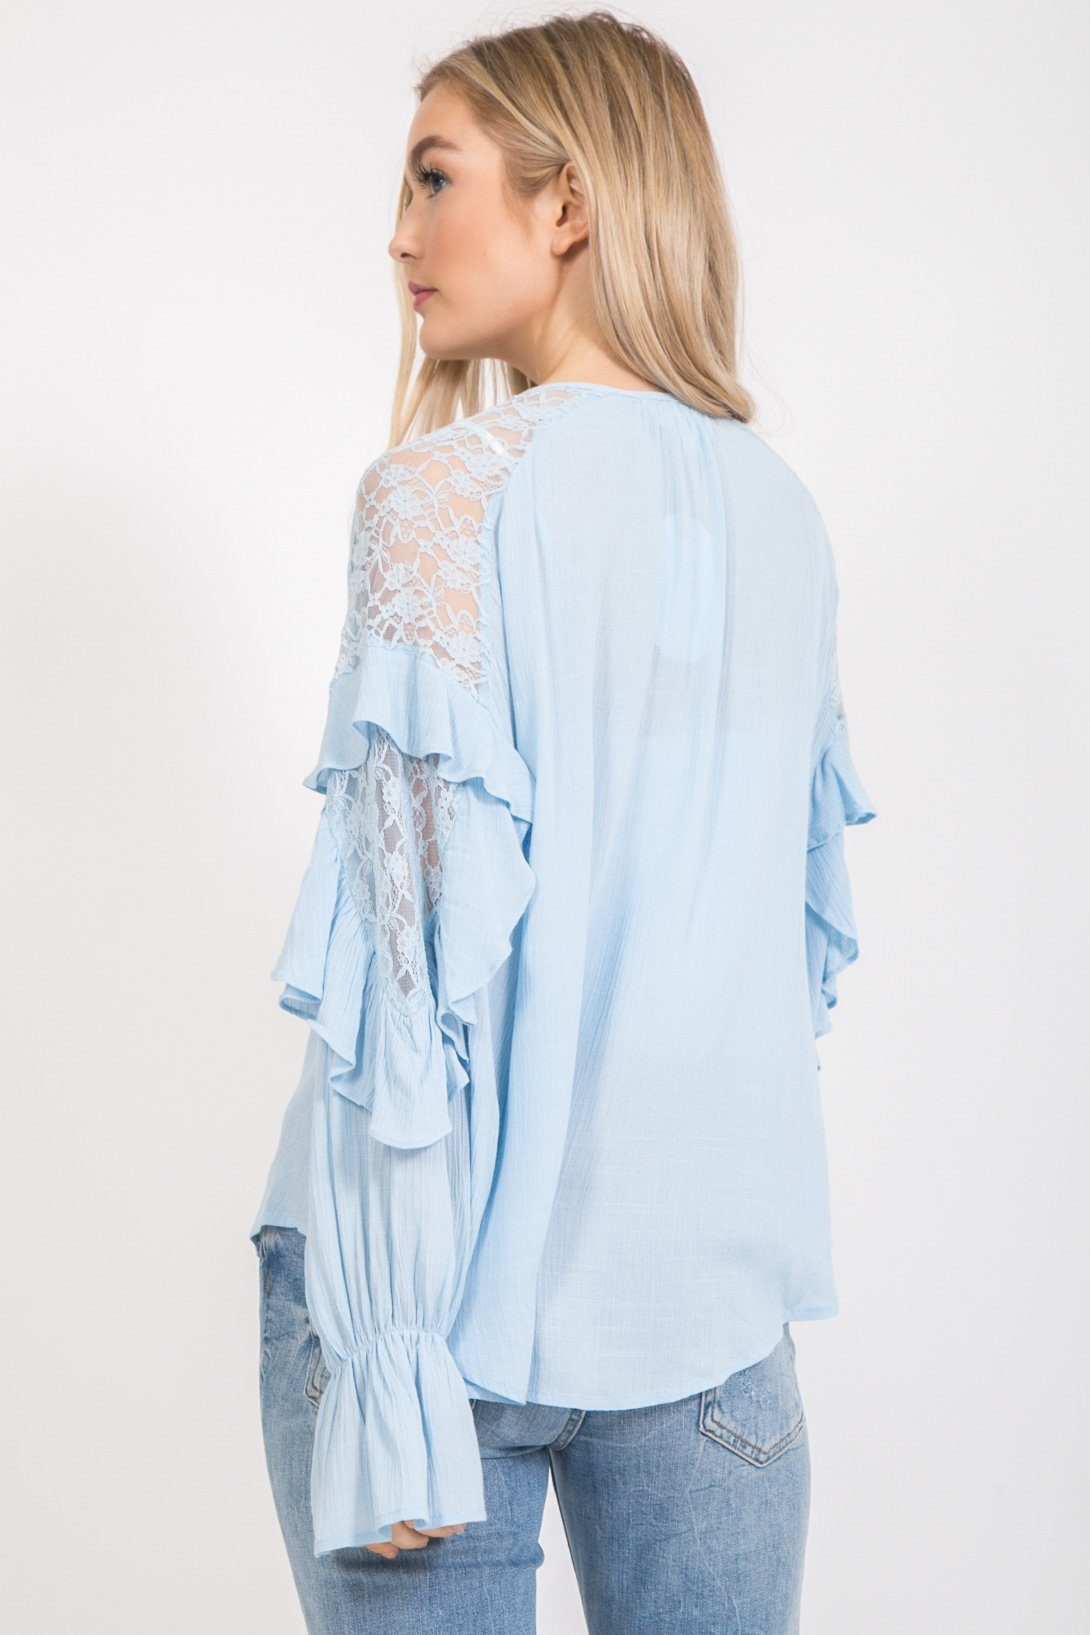 Ruffle Long Sleeve Blouse With Lace tops Loveriche